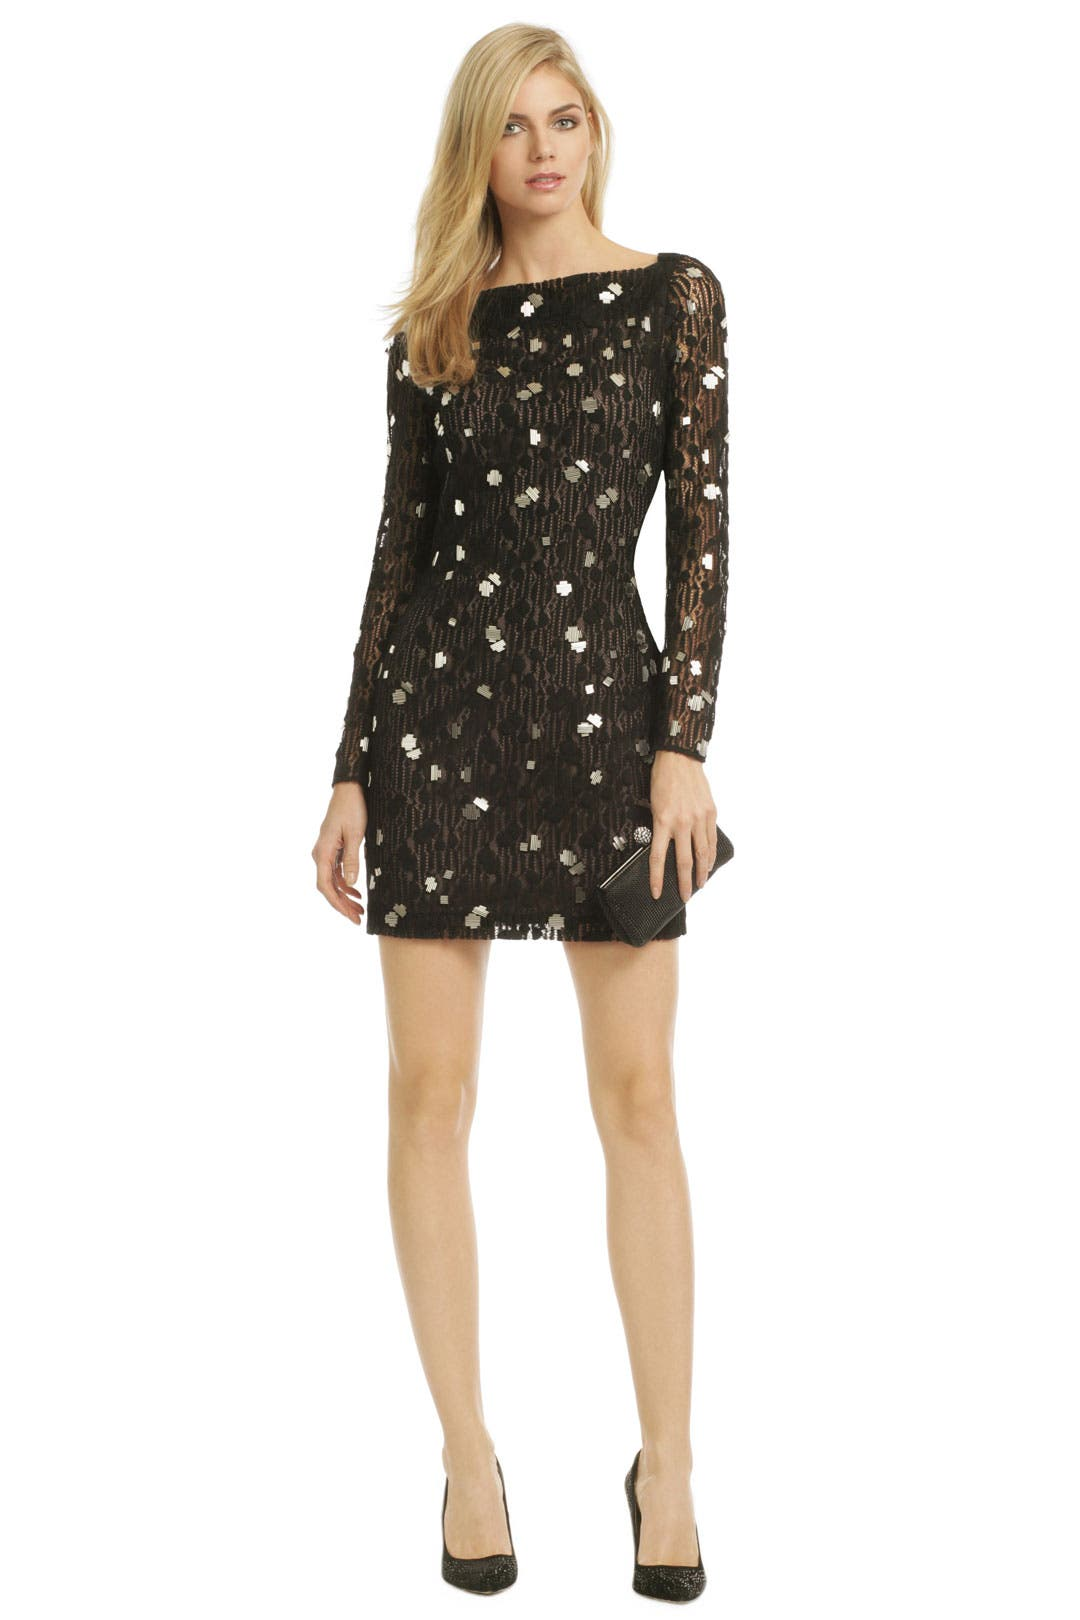 Magnetic Attraction Dress by Diane von Furstenberg